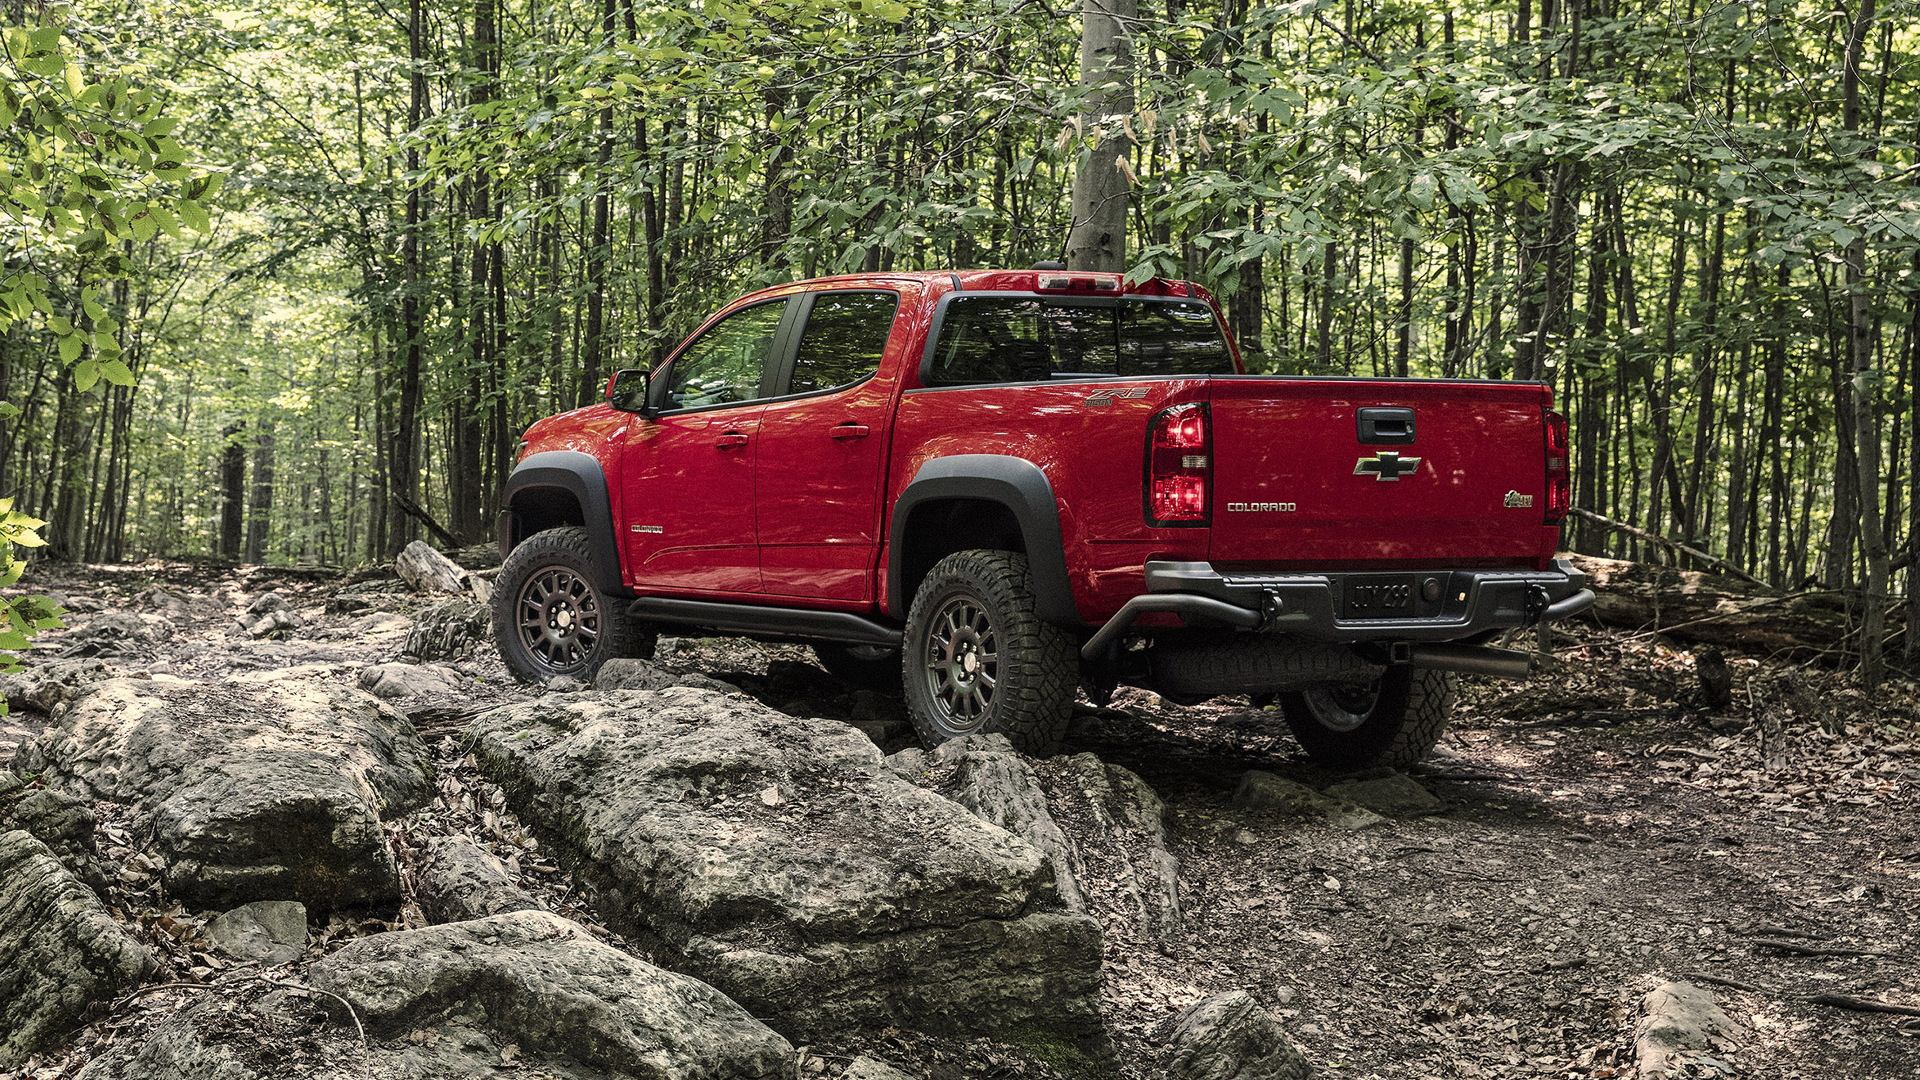 Chevrolet Colorado Zr2 Bison To Start At 48 045